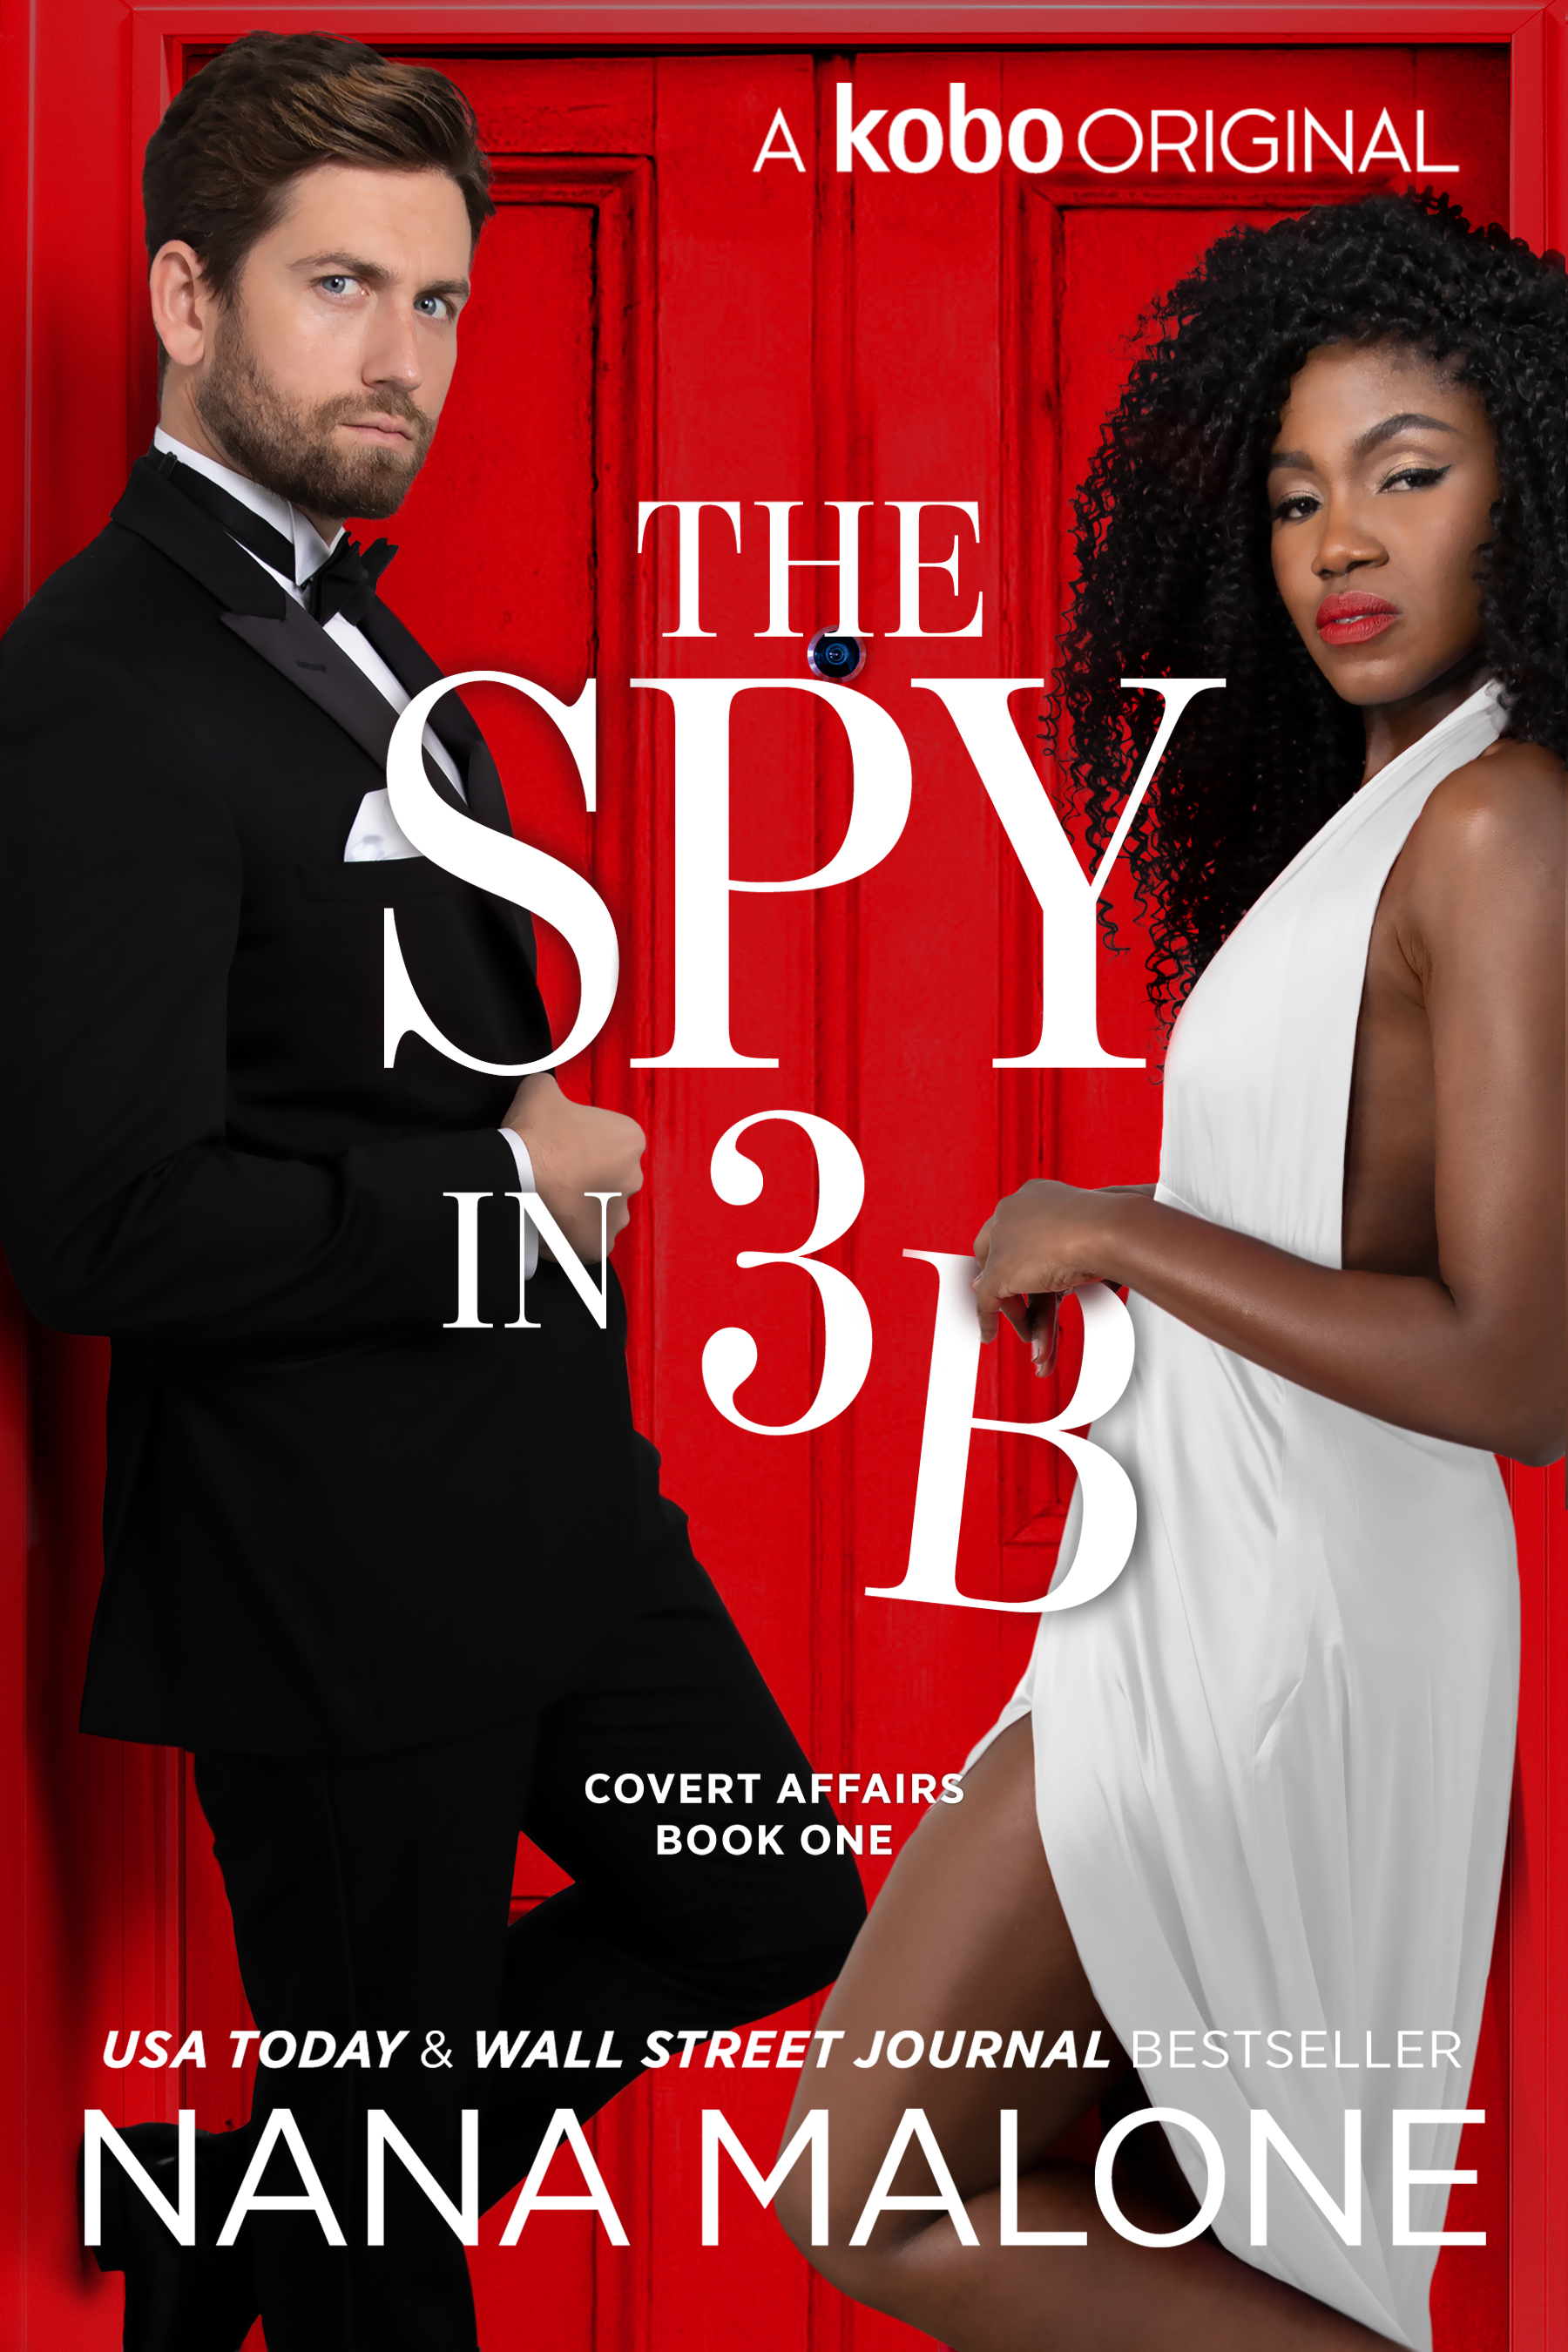 The Spy in 3B Book Cover